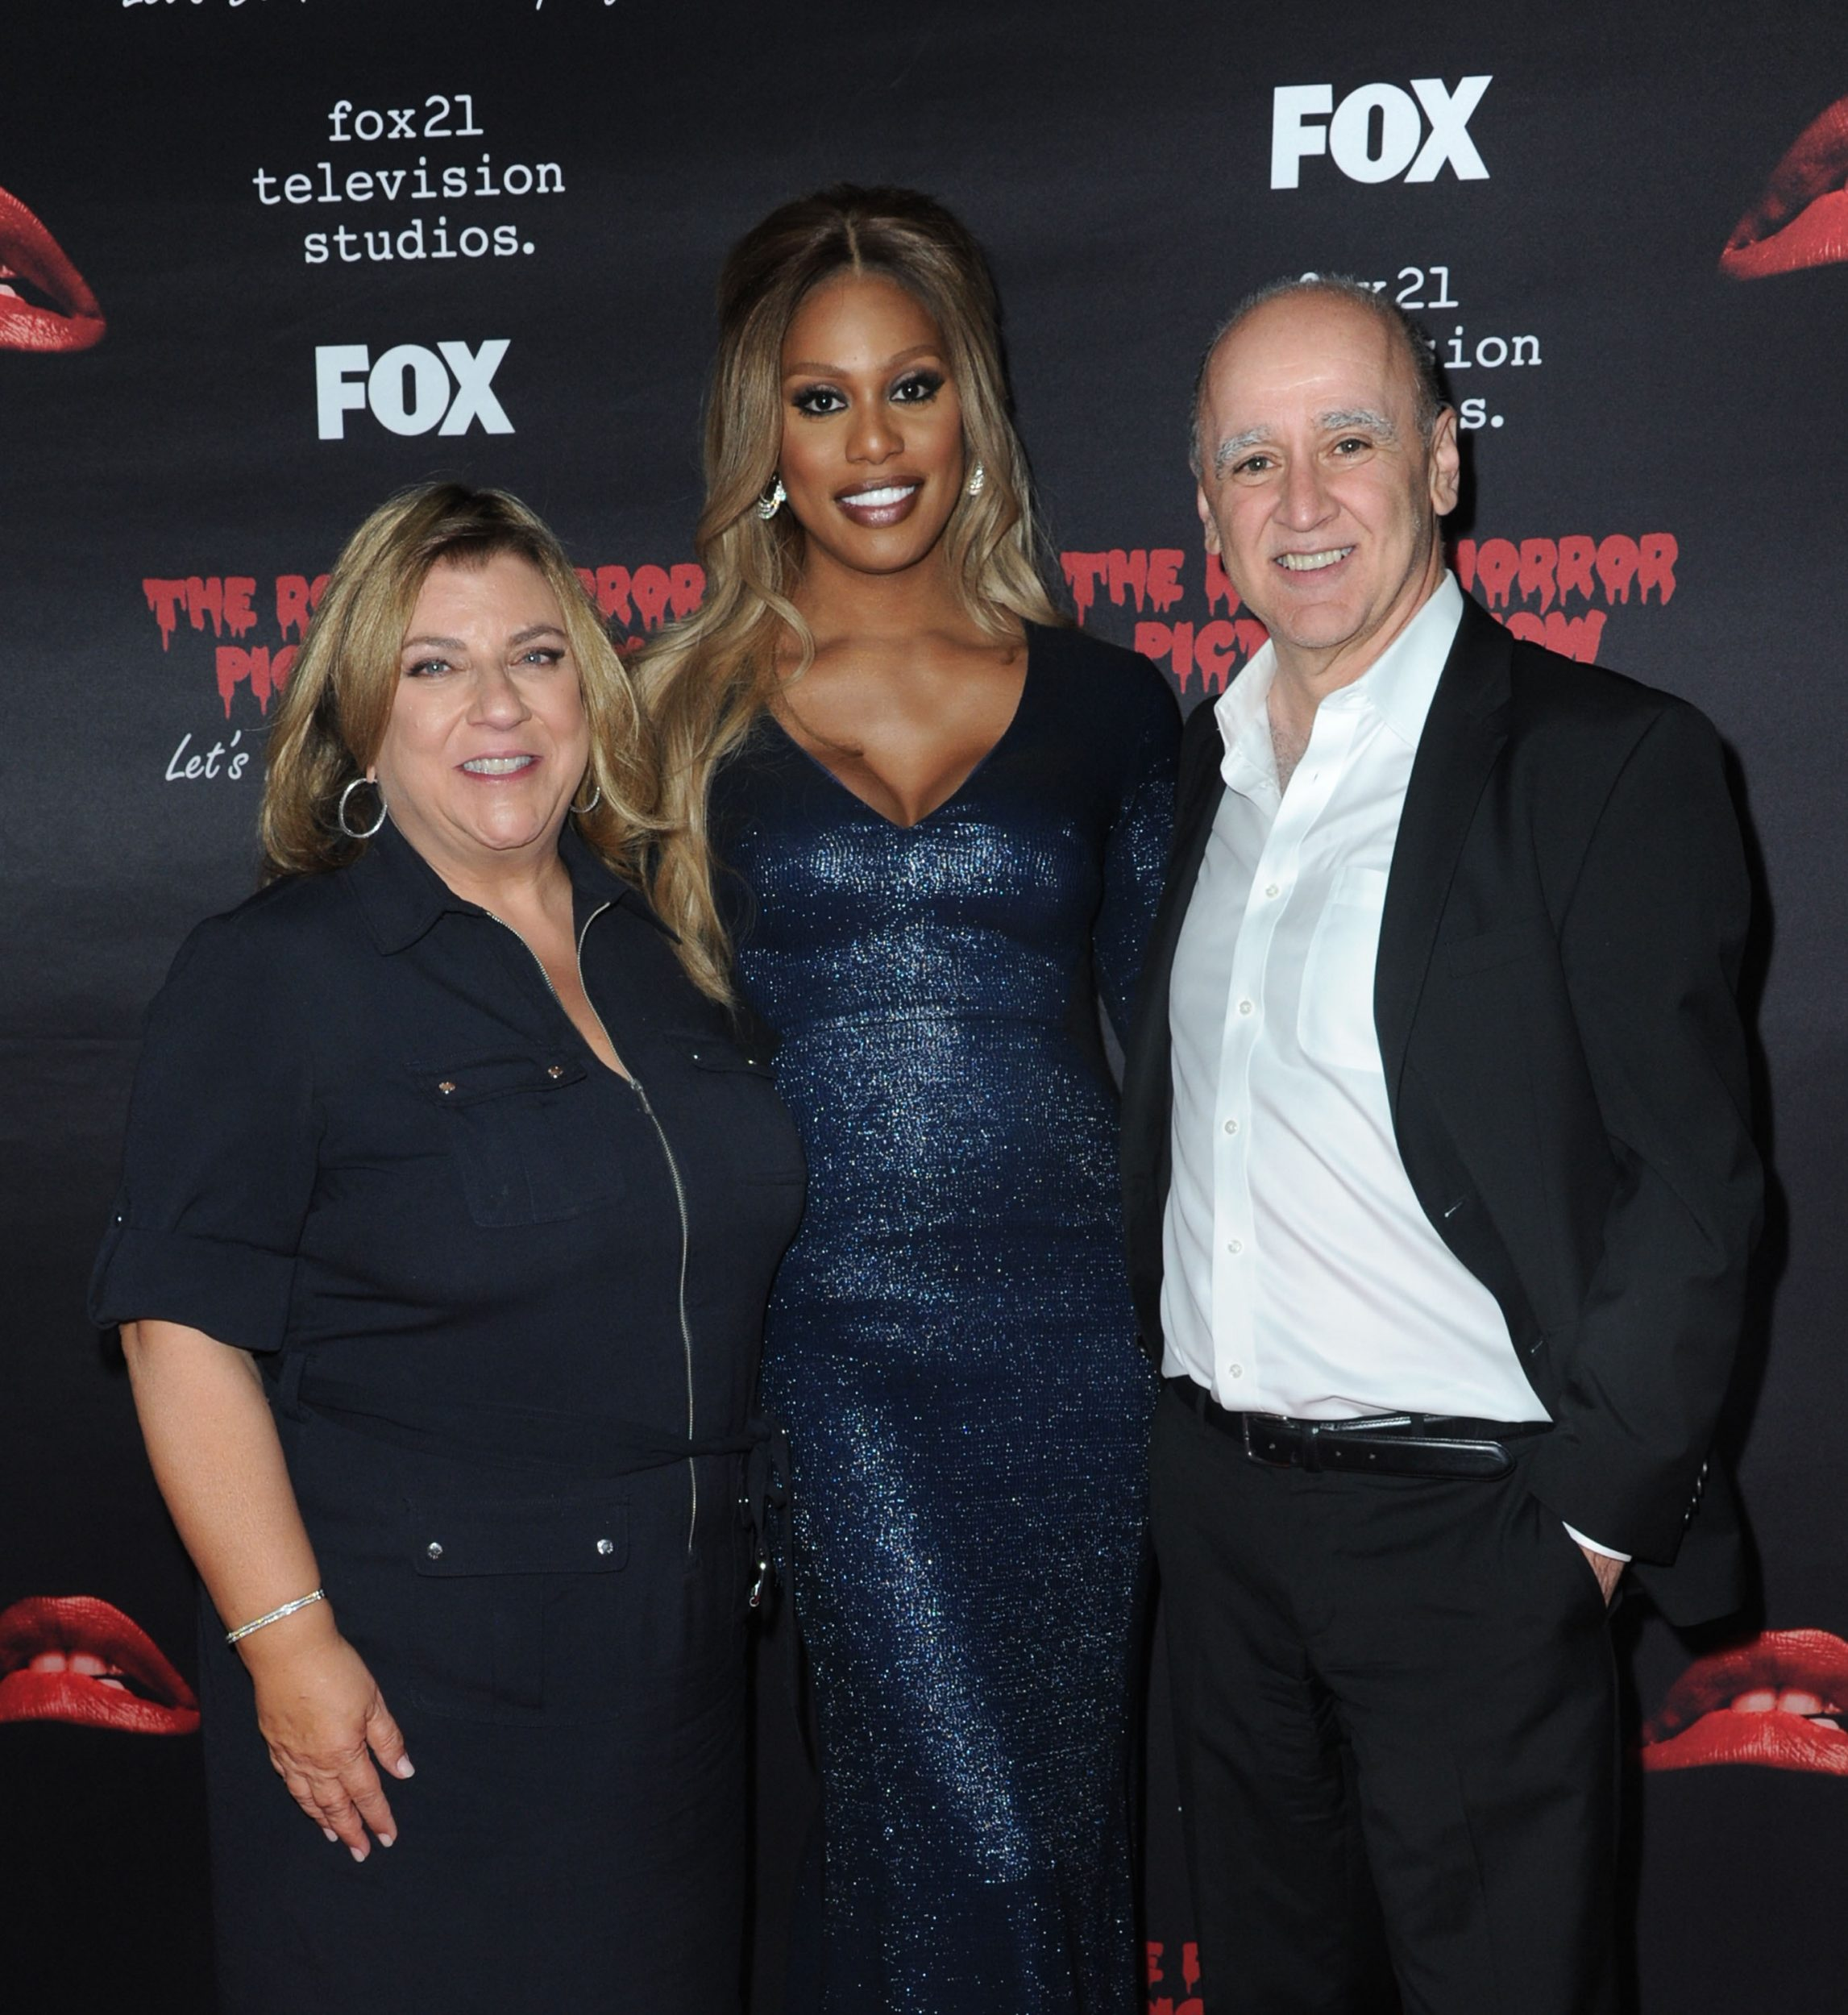 THE ROCKY HORROR PICTURE SHOW: Let's Do The Time Warp Again (and Transylvanians!): L-R: Executive Producer Gail Berman, cast member Laverne Cox and President, Entertainment, Fox Broadcasting Company David Madden arrive at THE ROCKY HORROR PICTURE SHOW: Let's Do The Time Warp Again (and Transylvanians!) premiere party red carpet at The Roxy on Thursday, Oct. 13, in Los Angeles, CA. THE ROCKY HORROR PICTURE SHOW: Let's Do The Time Warp Again (And Transylvanians!) premieres Thursday, Oct. 20 (8:00-10:00 PM ET/PT) on FOX. © 2016 FOX BROADCASTING CR: Rihard Shotwell/FOX